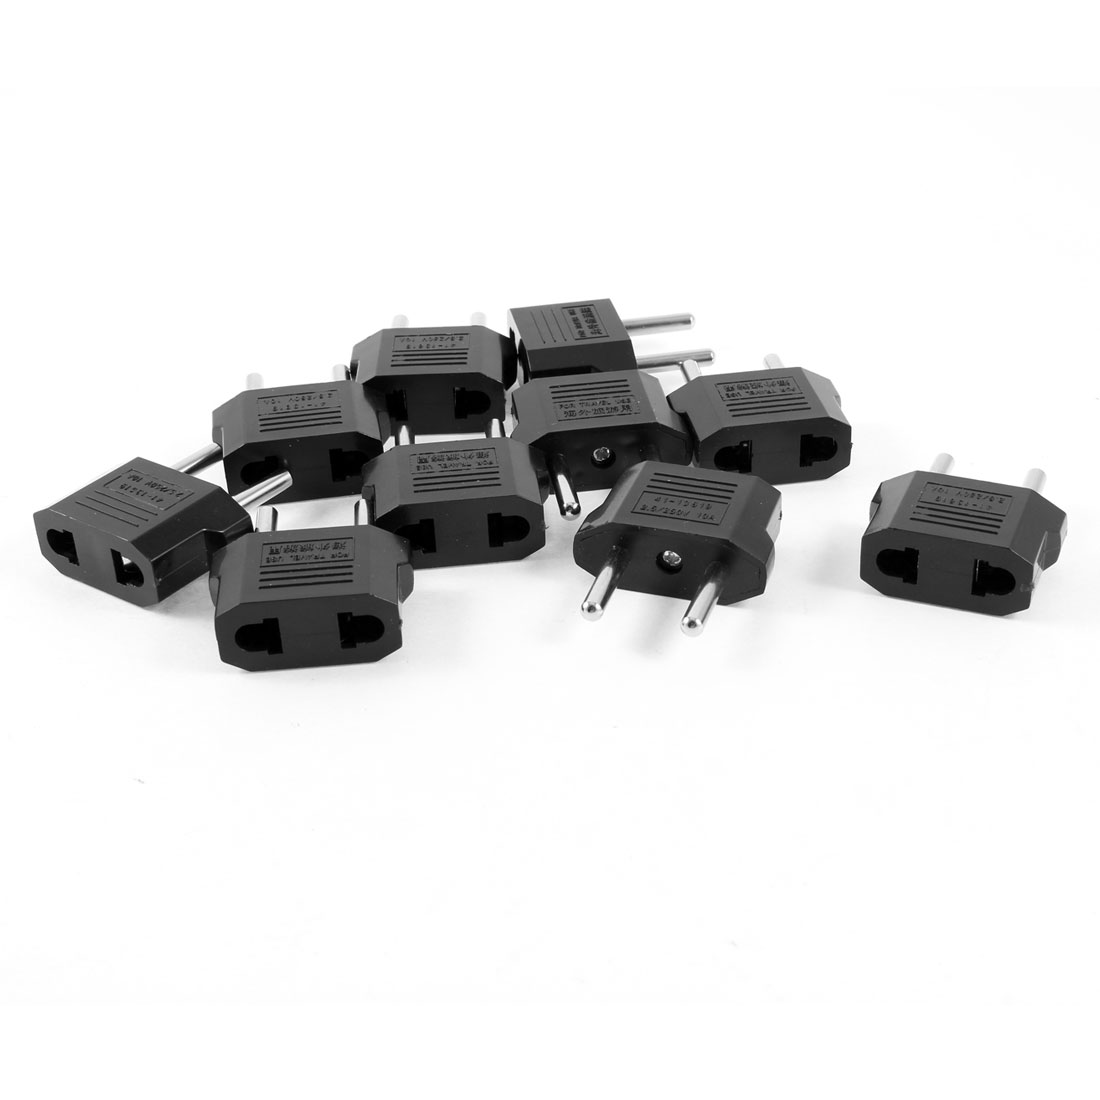 AC 10A 250V US to EU 2 Terminals Round Plug Adapter Travel Power Connector 10 Pcs